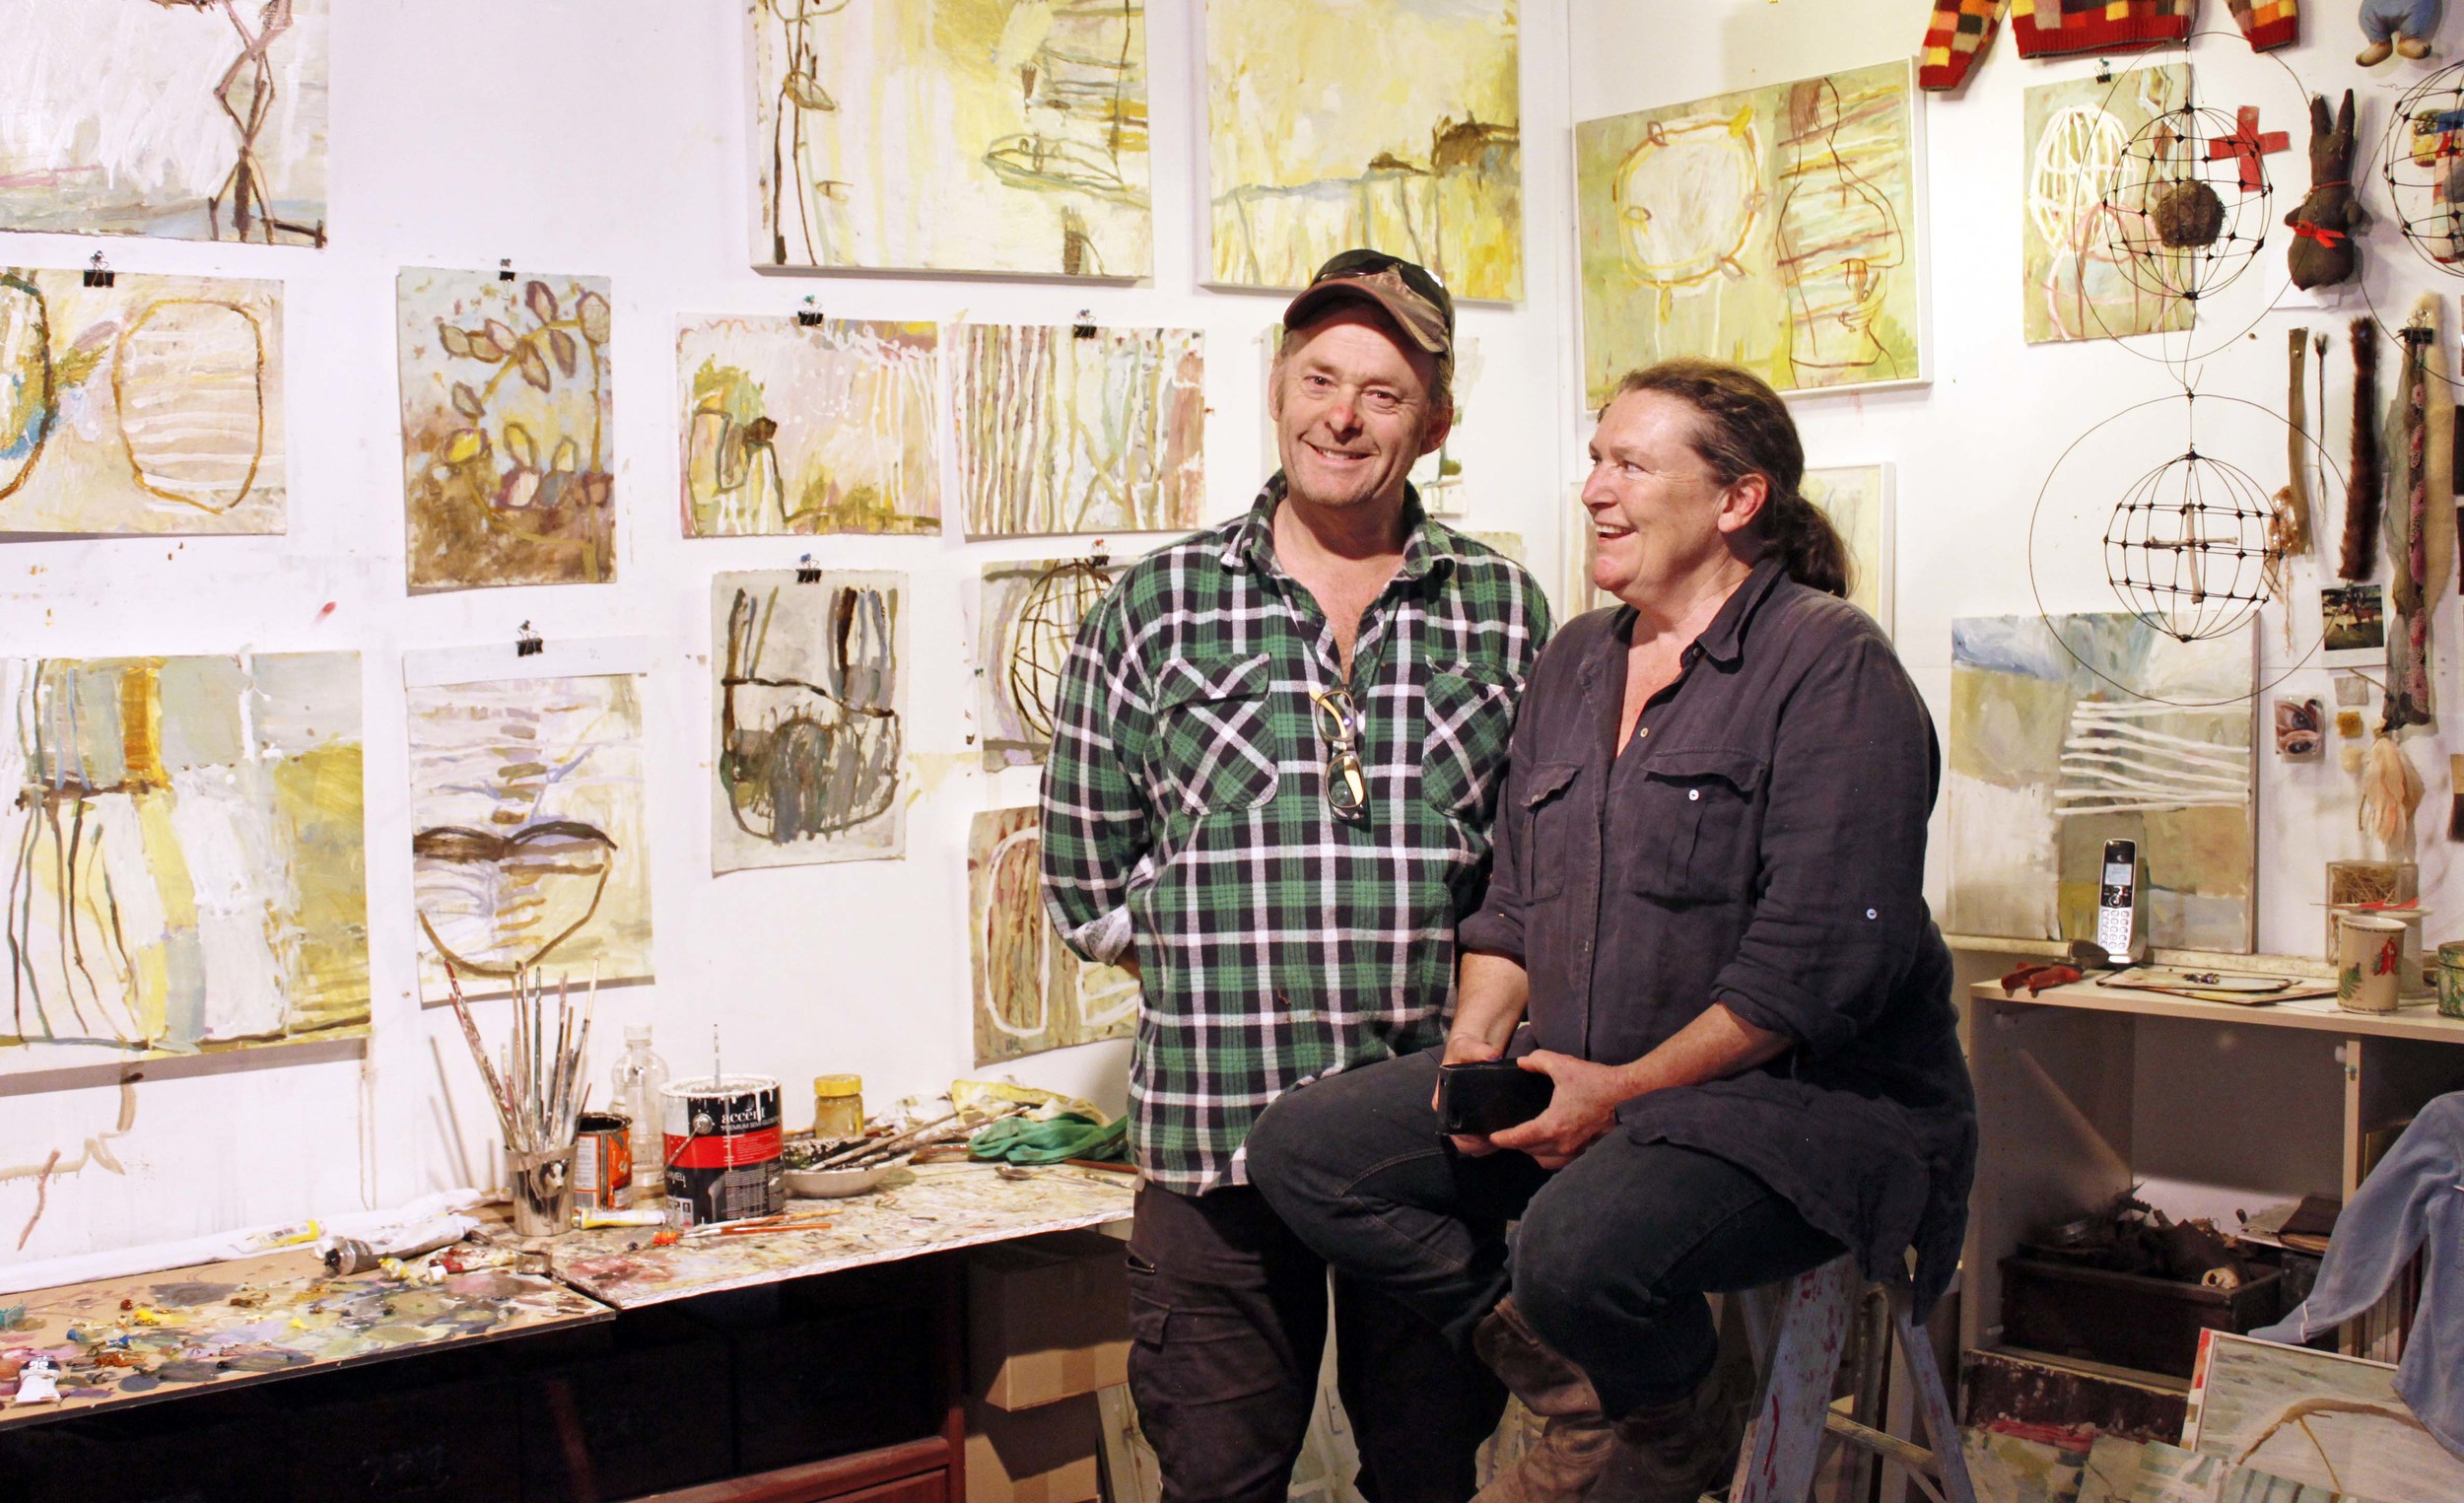 Australian artist studio visit, contemporary Australian artist, Jaq Davies & Glenn Hoyle, The Corner Store Gallery, photograph by Madeline Young